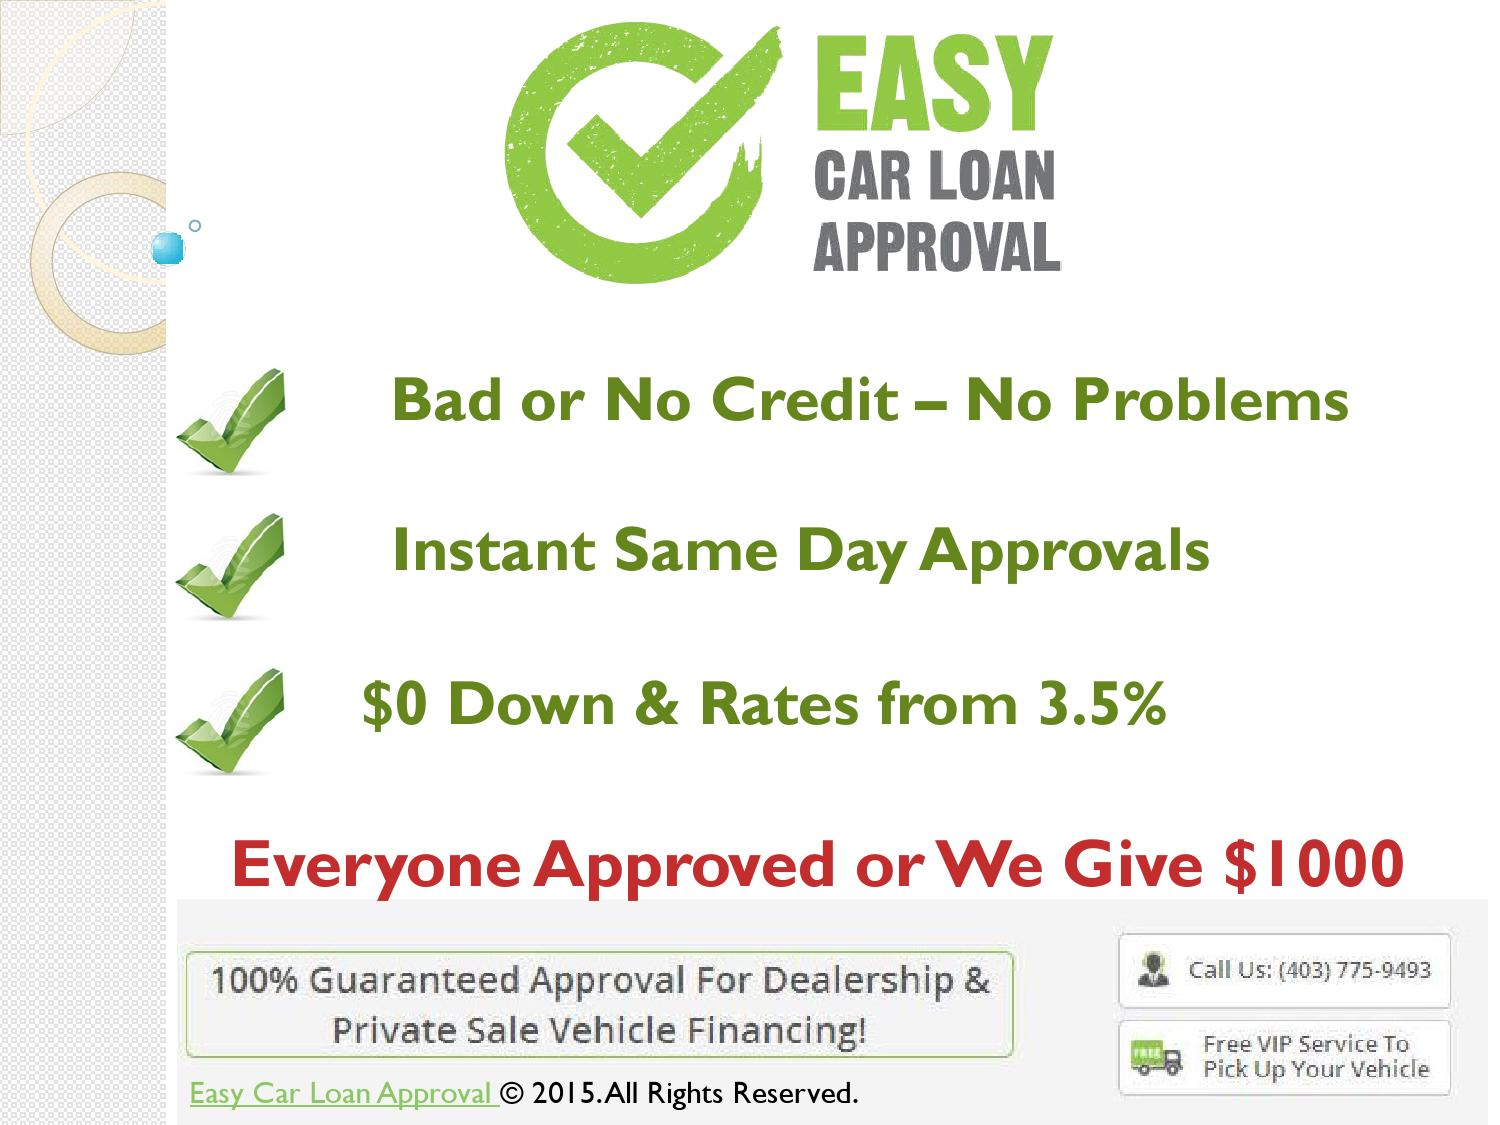 Guaranteed Auto Loan Dealerships >> Auto Loans For Bad Credit Easy Car Loan Appro